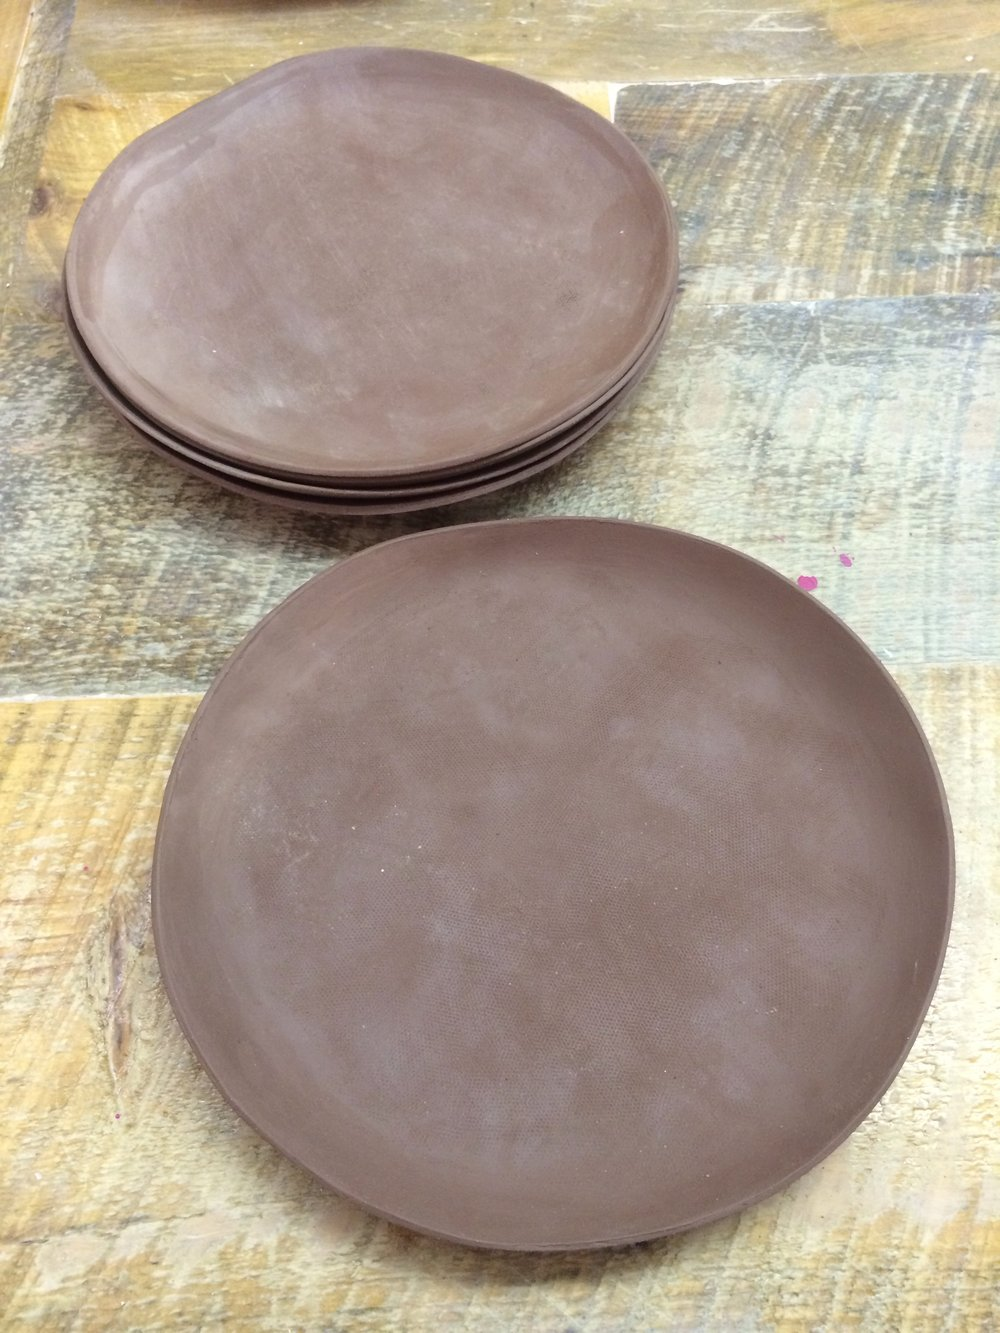 Slab plate. Rolled out flat to about 4-5mm thick cut to size & Speckled Clay Bowls and Plates u2014 Patty Yuan